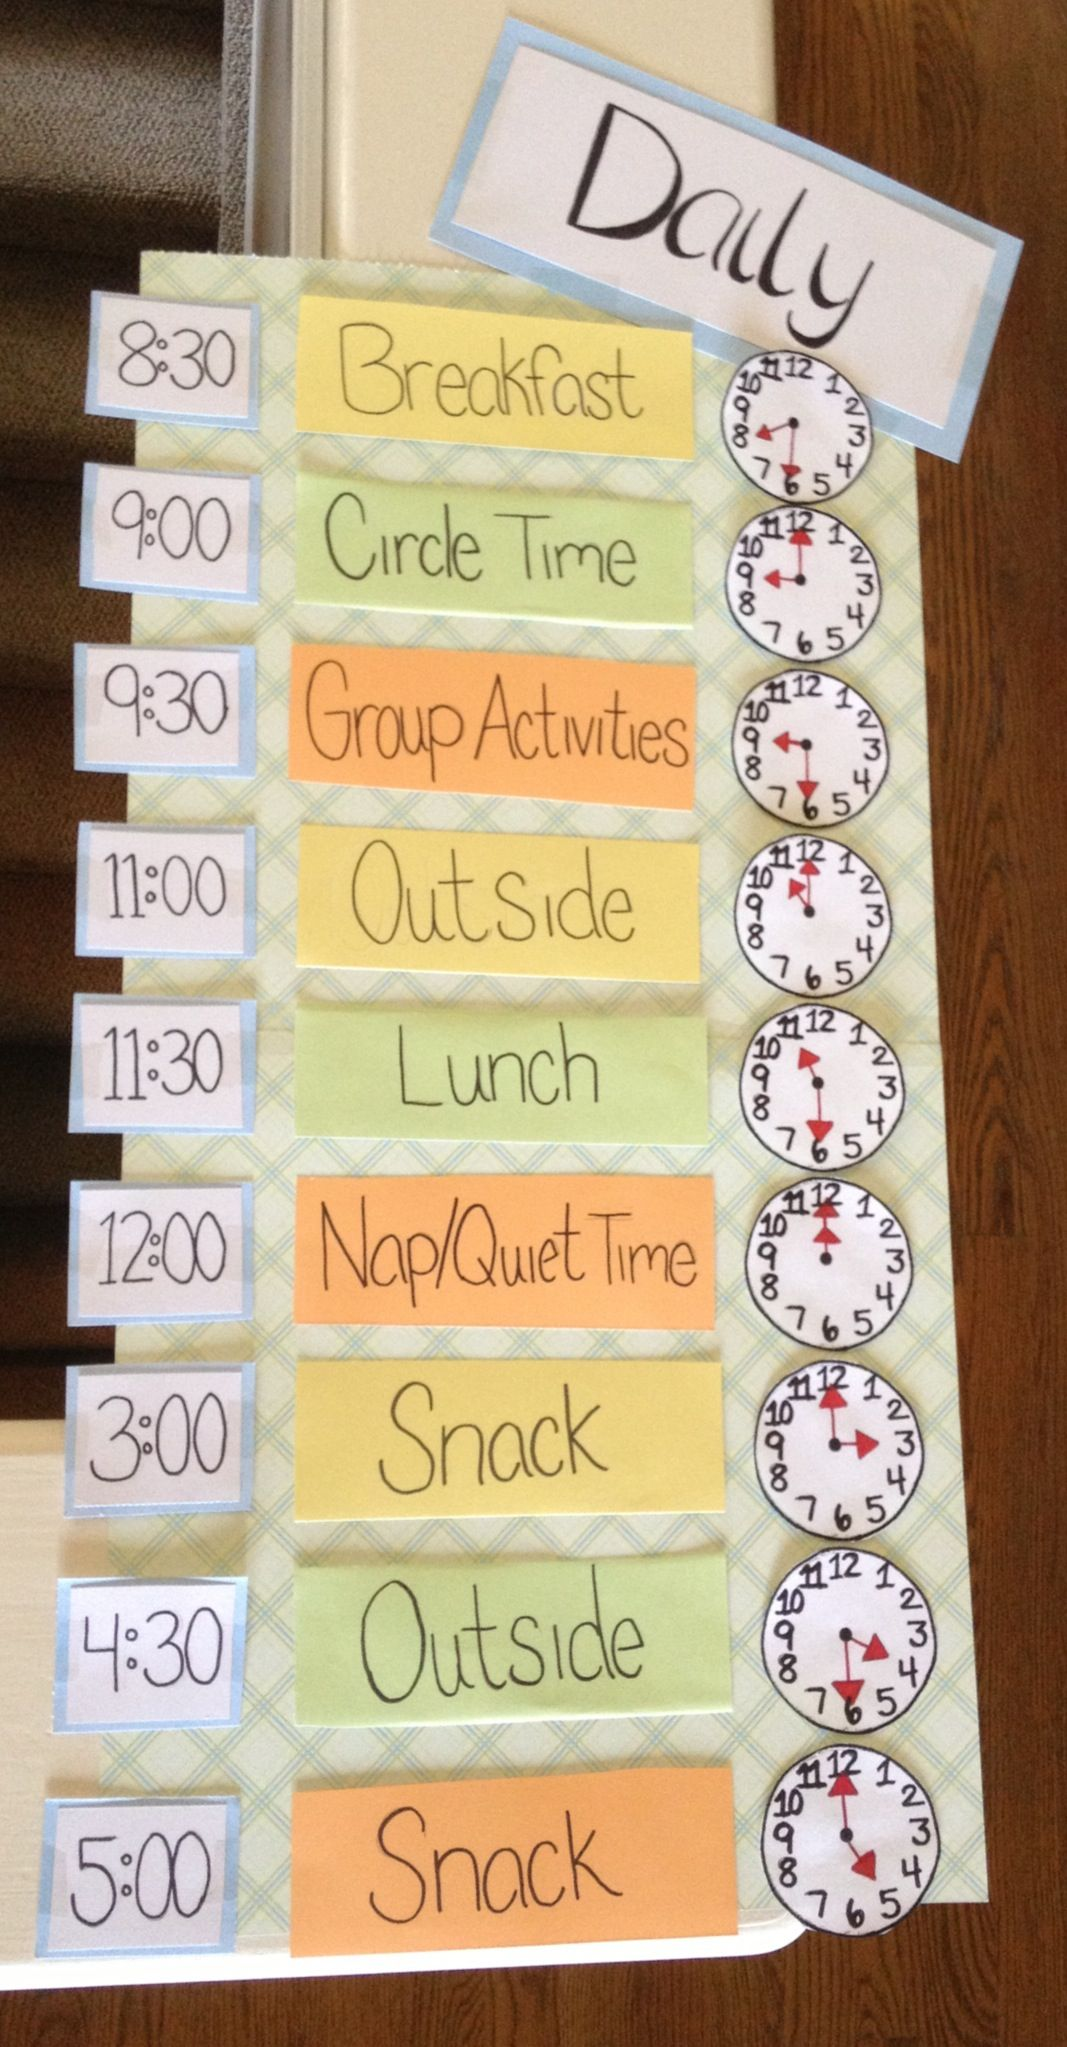 Calendar Ideas Early Years : I made this daily schedule for early childhood education